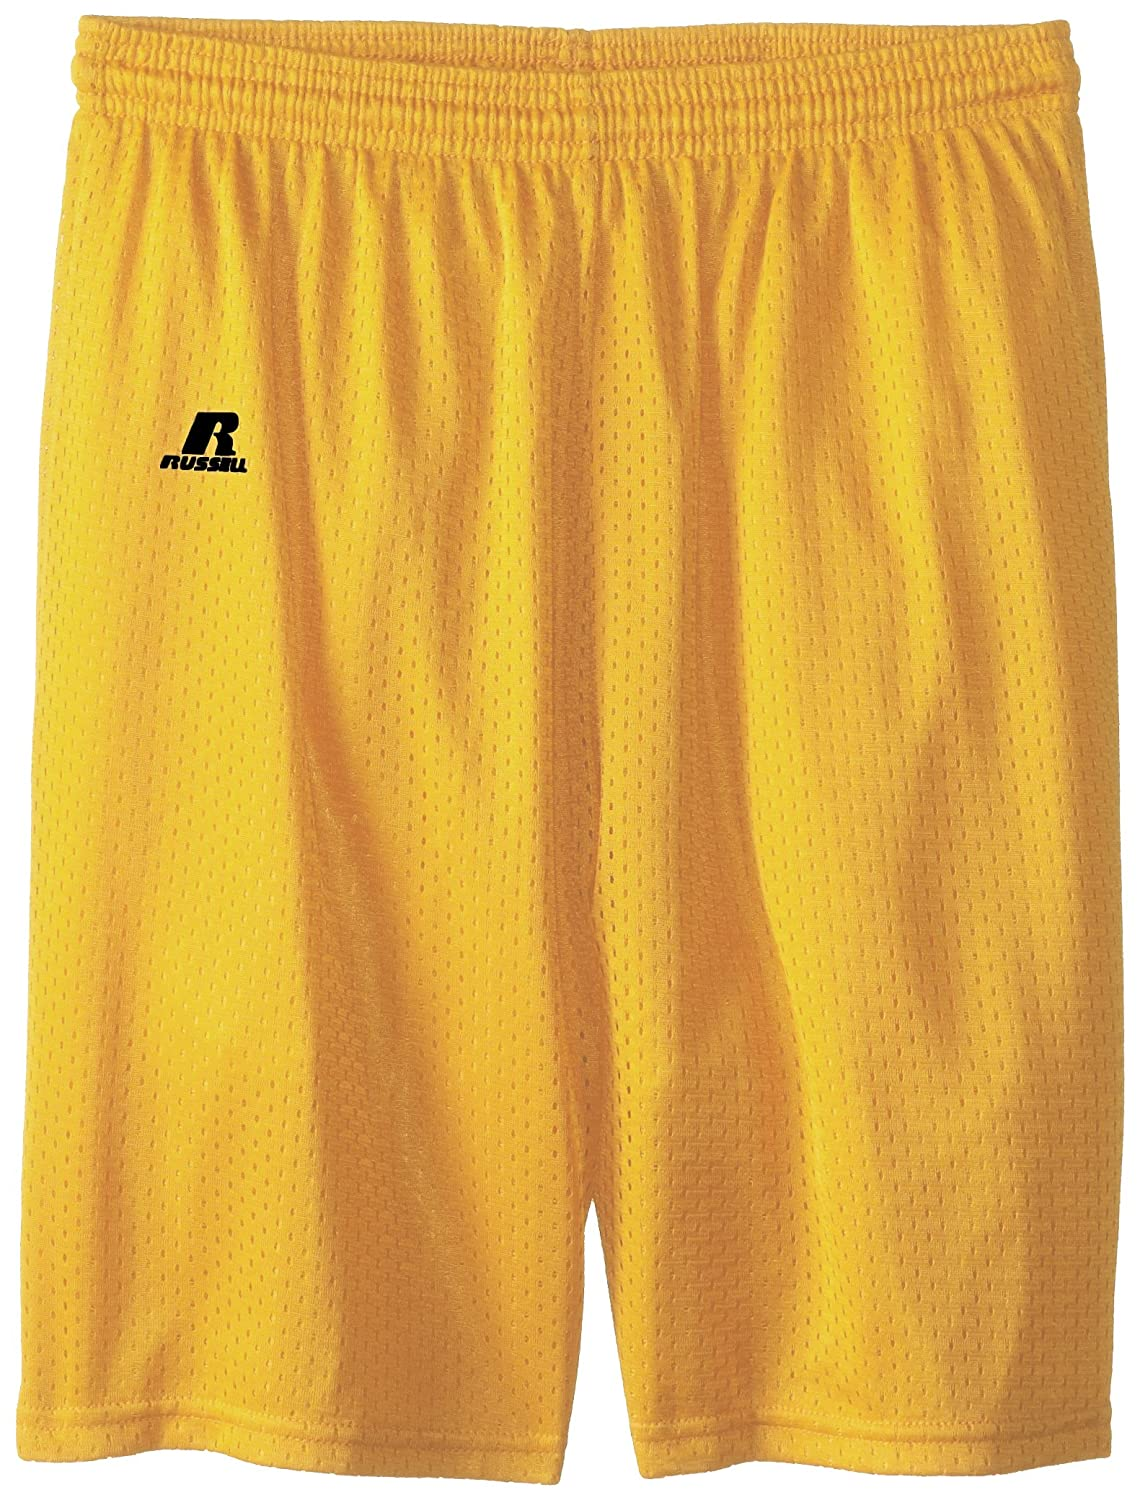 Russell Athletic Big Boys' Youth Mesh Short Russell Athletics - Kids 659AFB0